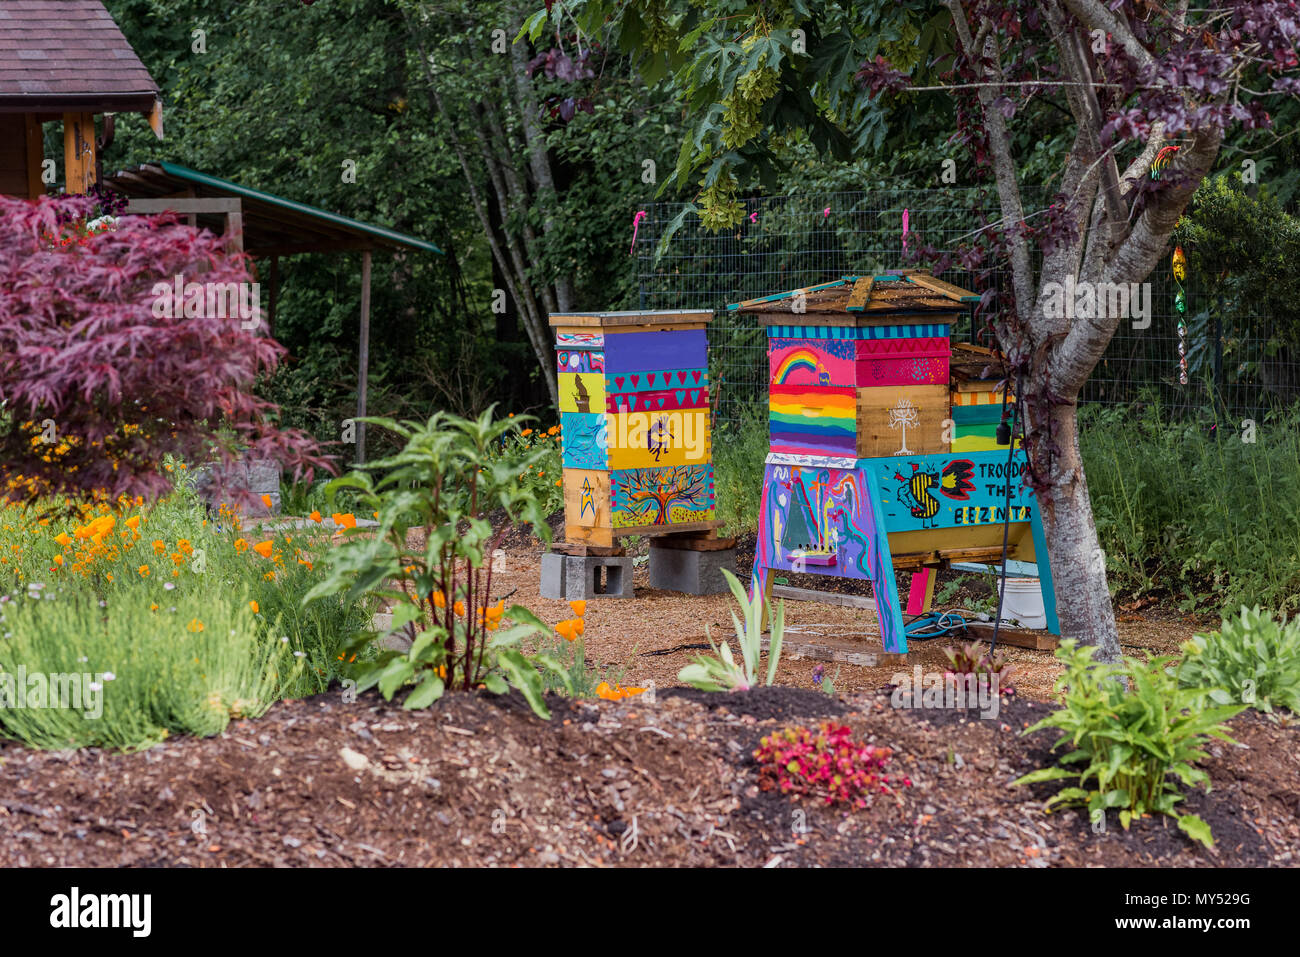 Colourful painted bee hives, Union Bay, Vancouver Island, British Columbia, Canada. - Stock Image